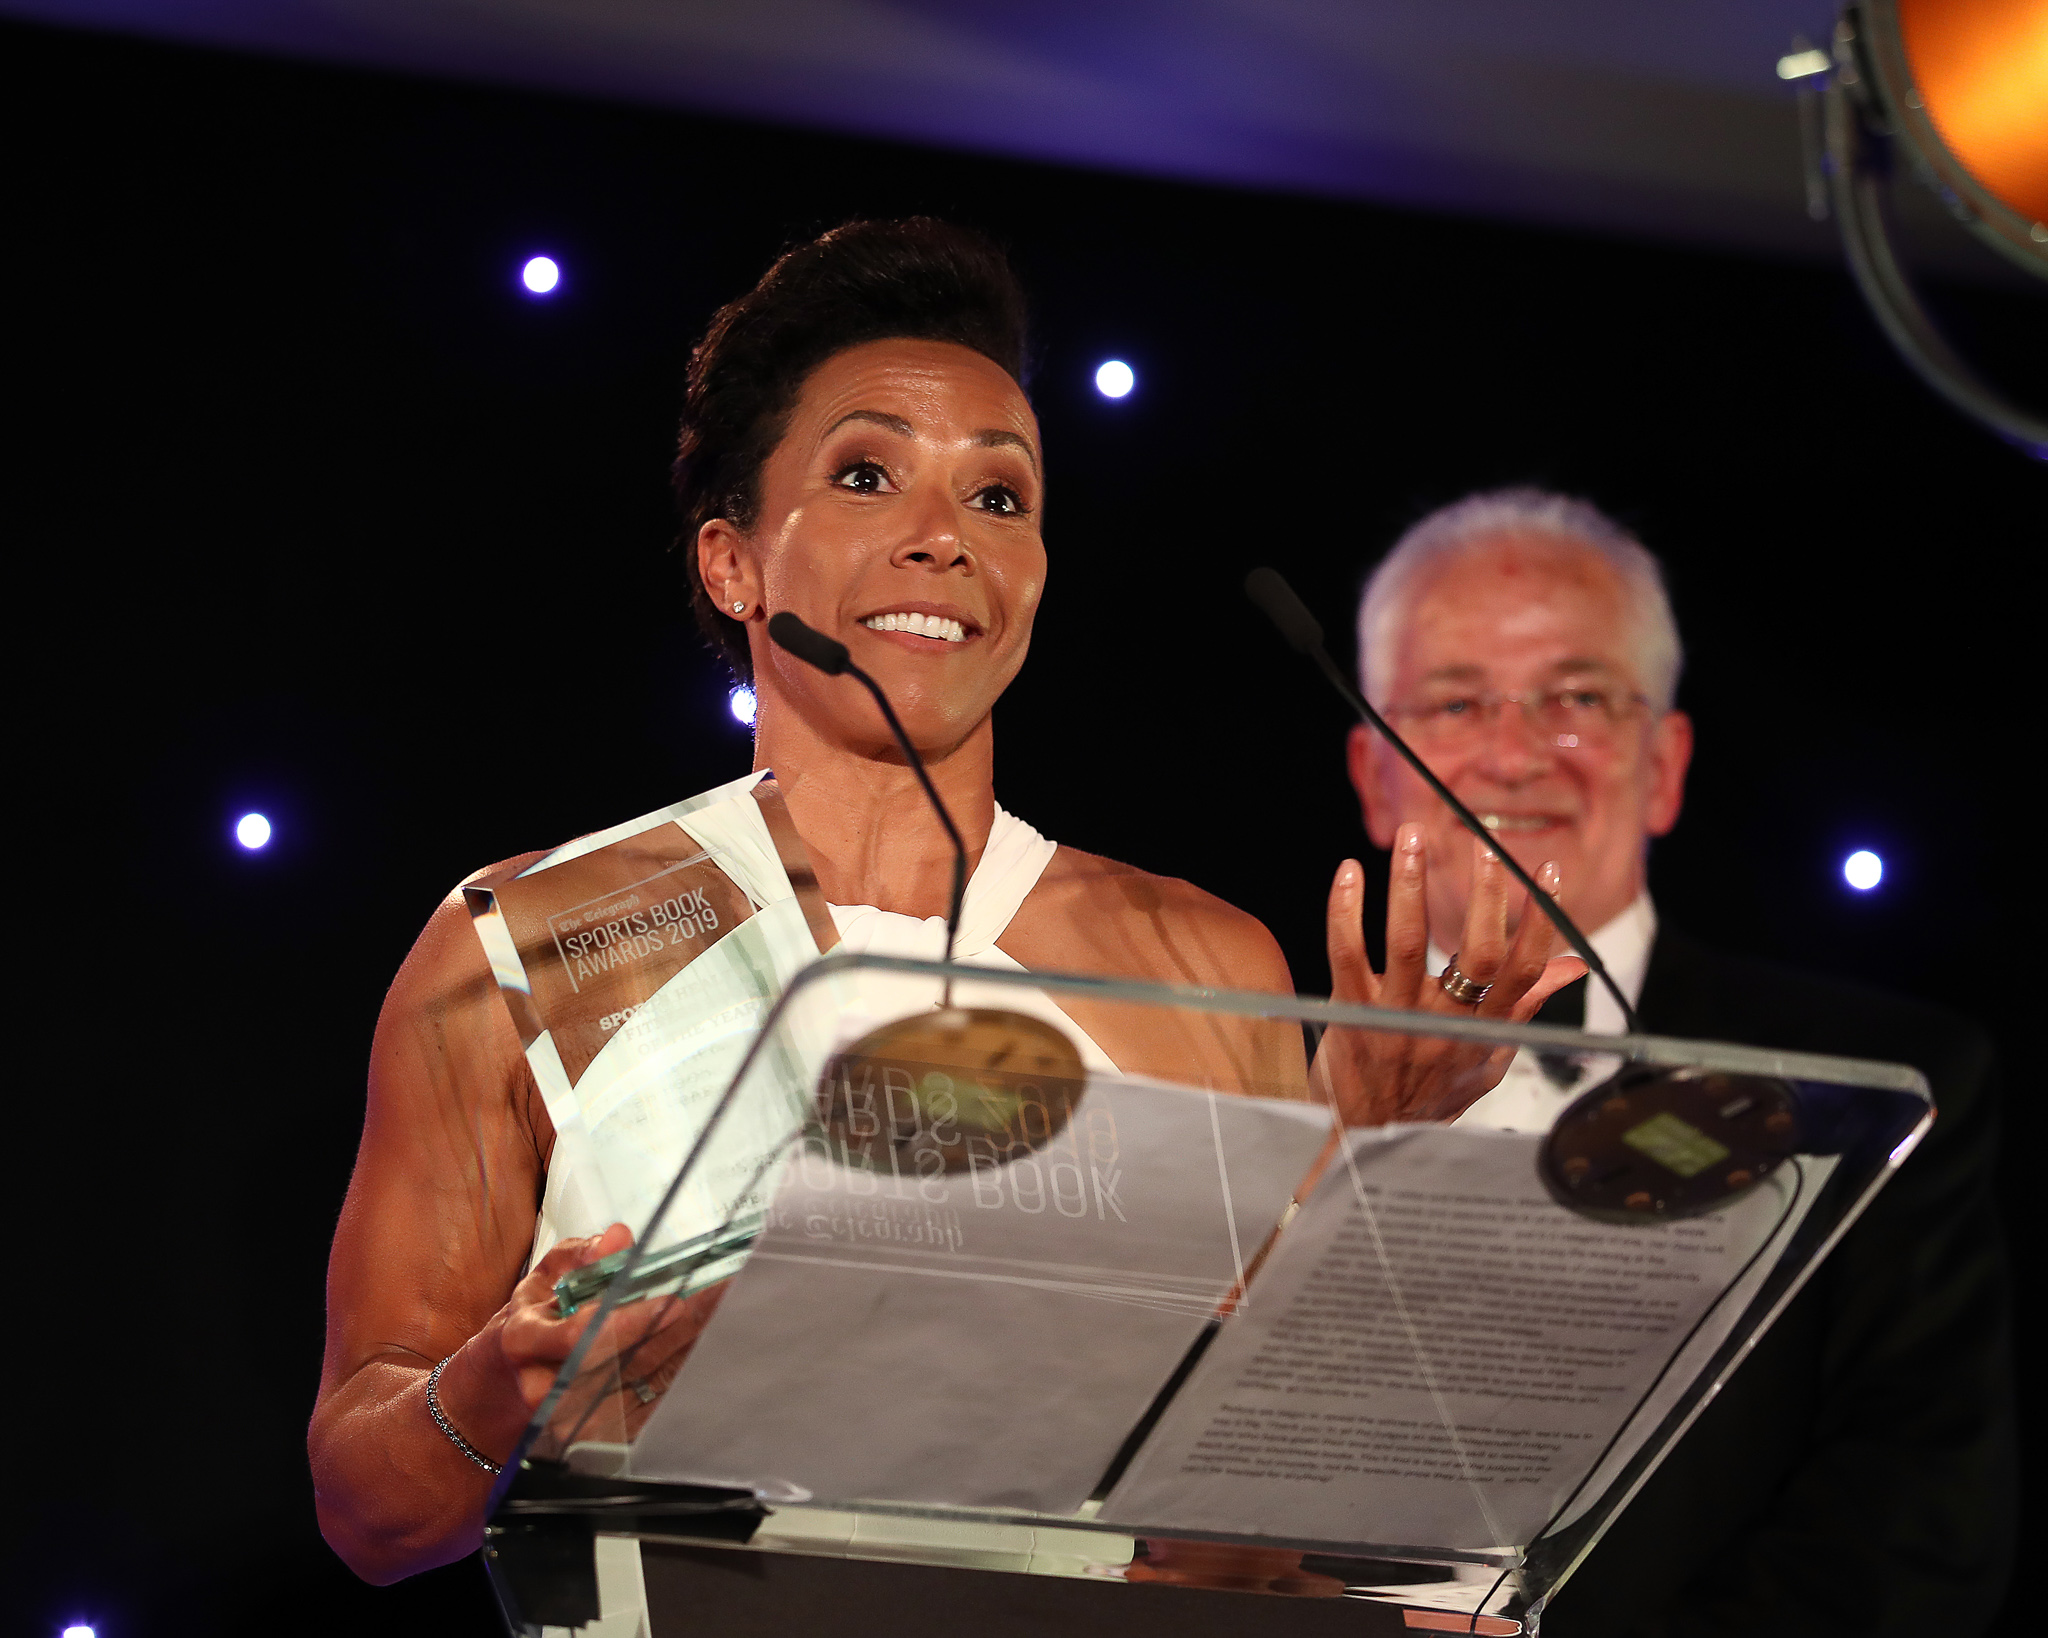 Winner of the Health & Fitness Book of the Year, Dame Kelly Holmes makes her acceptance speech during the Sports Book Awards at Lord's Cricket Ground on June 04, 2019 in London,